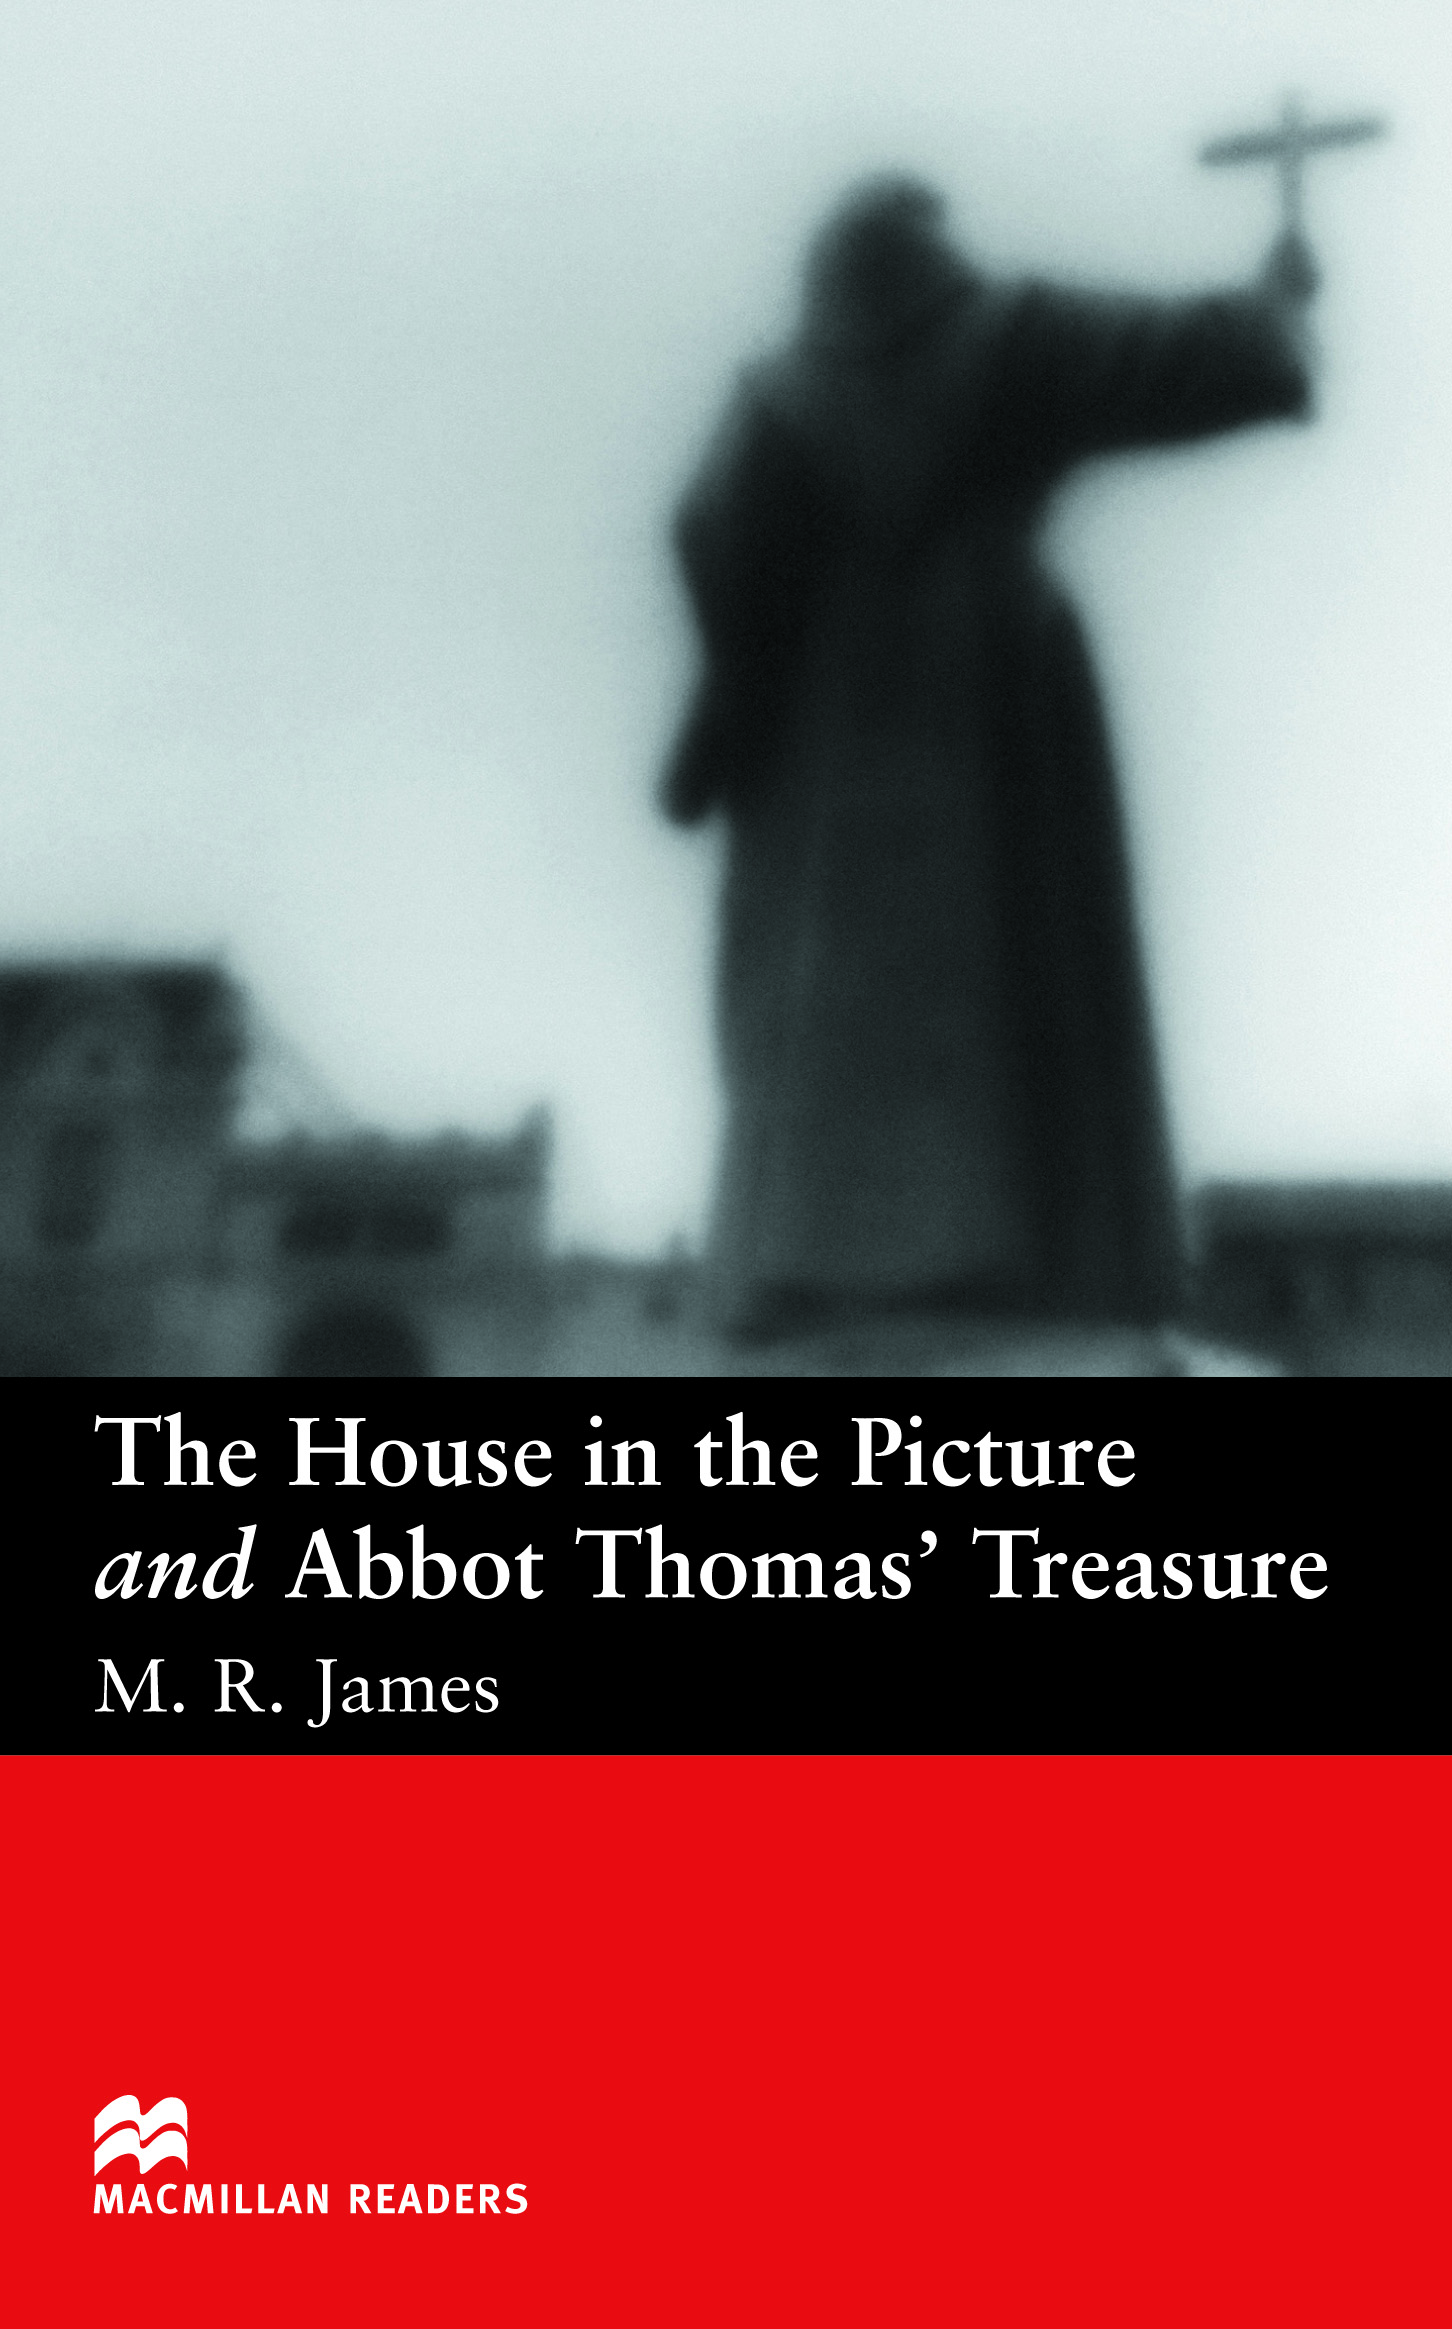 Macmillan Readers: The House In The Picture and Abbot Thomas